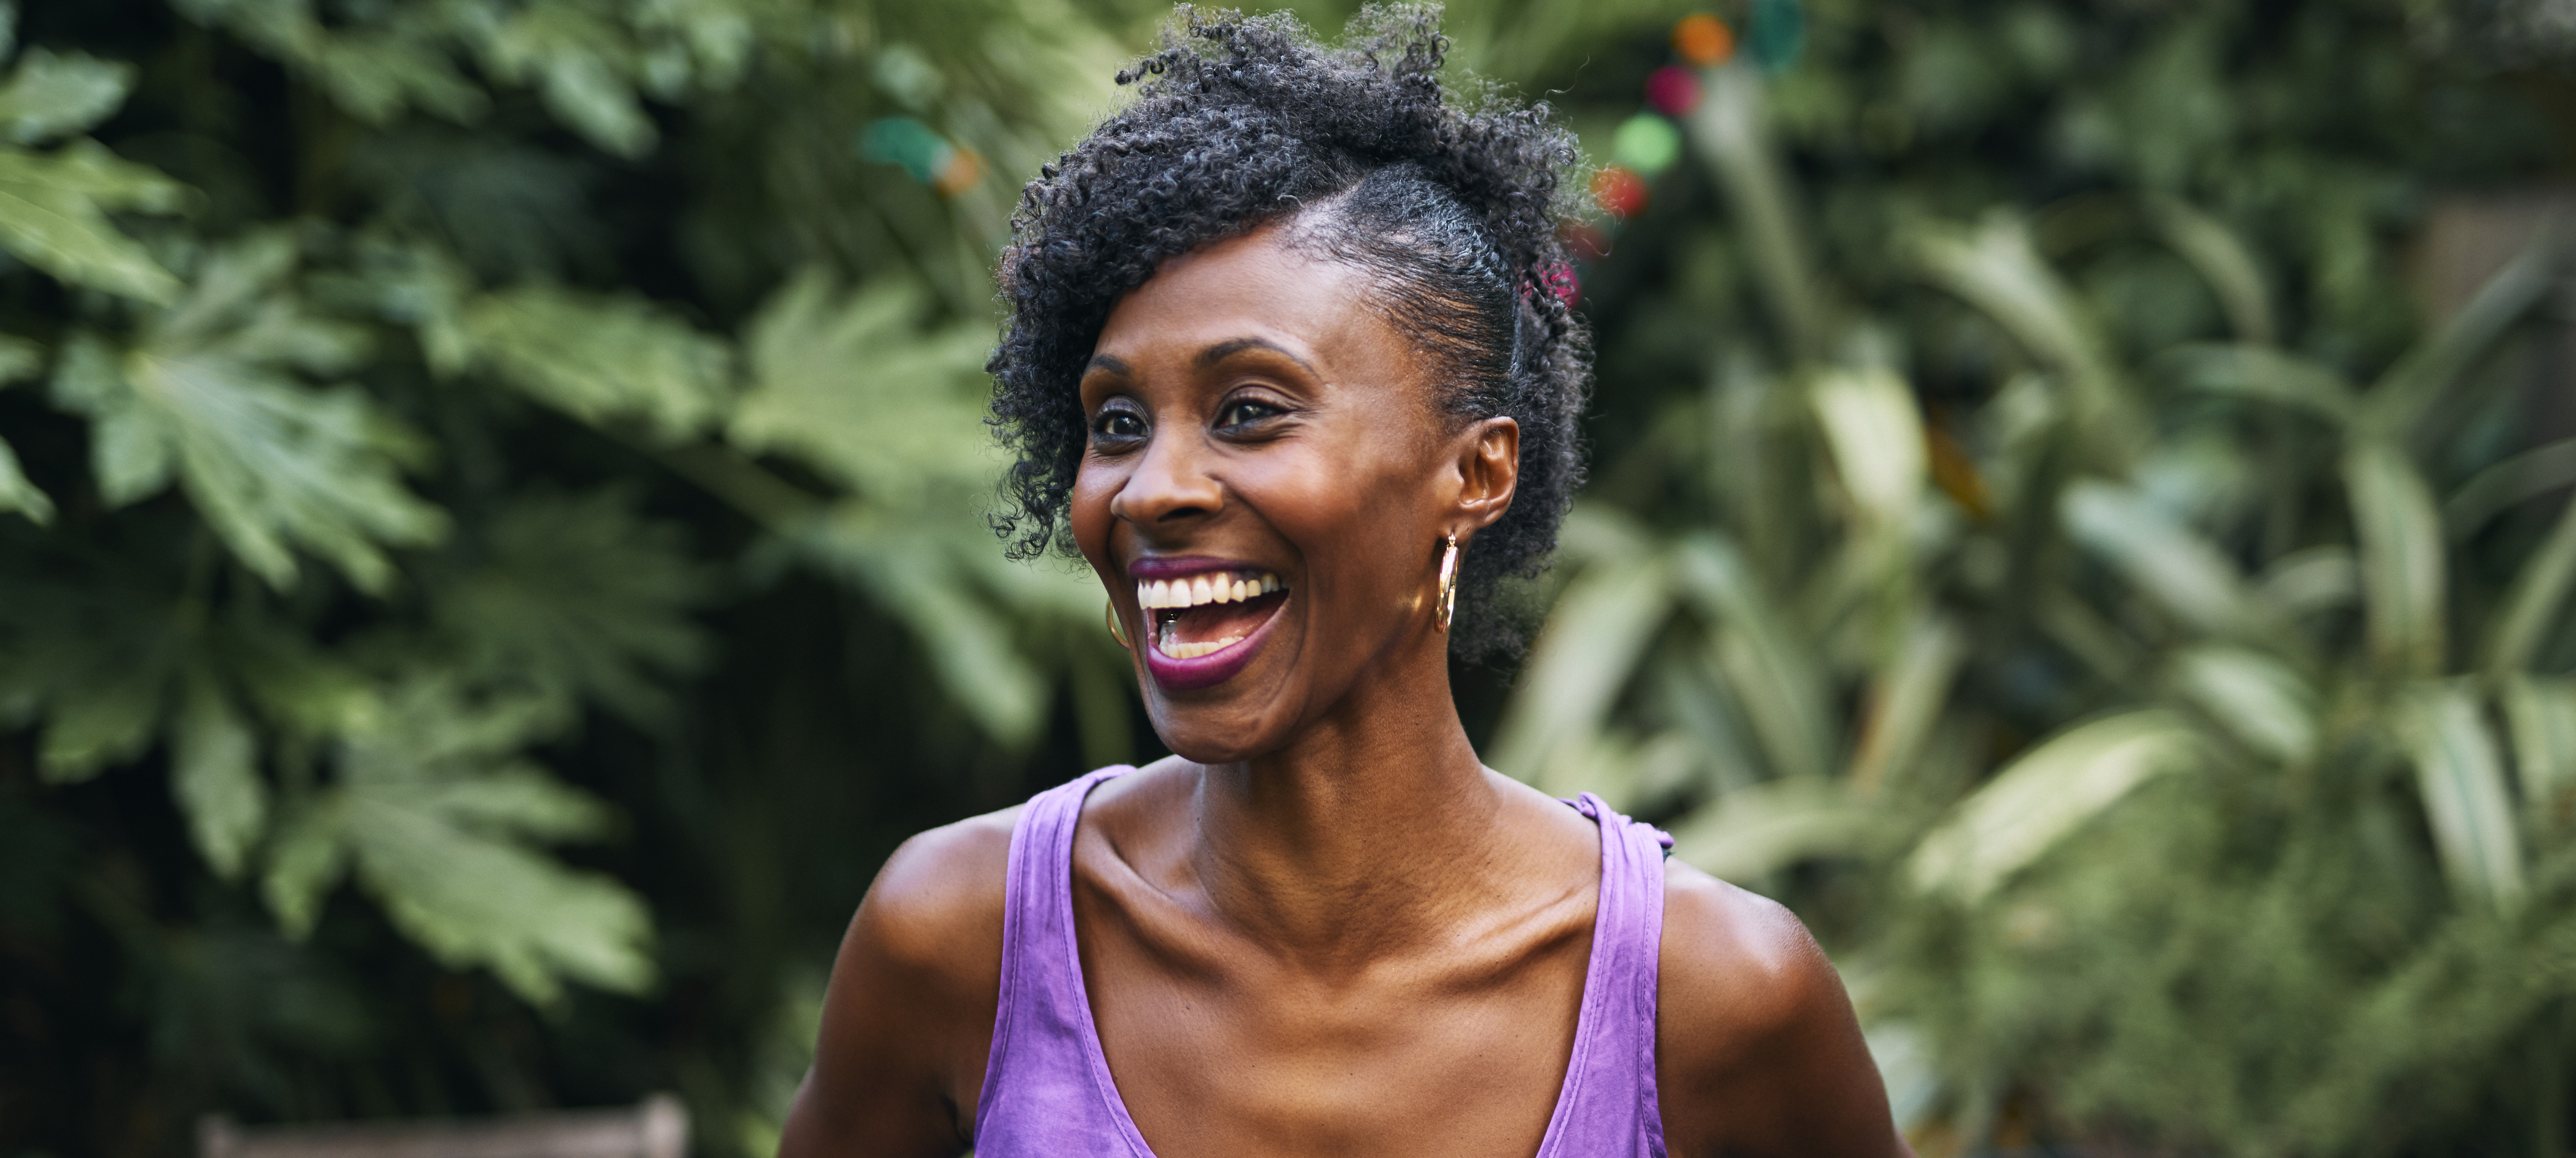 Happy woman standing in front of trees in a purple top laughing at the camera